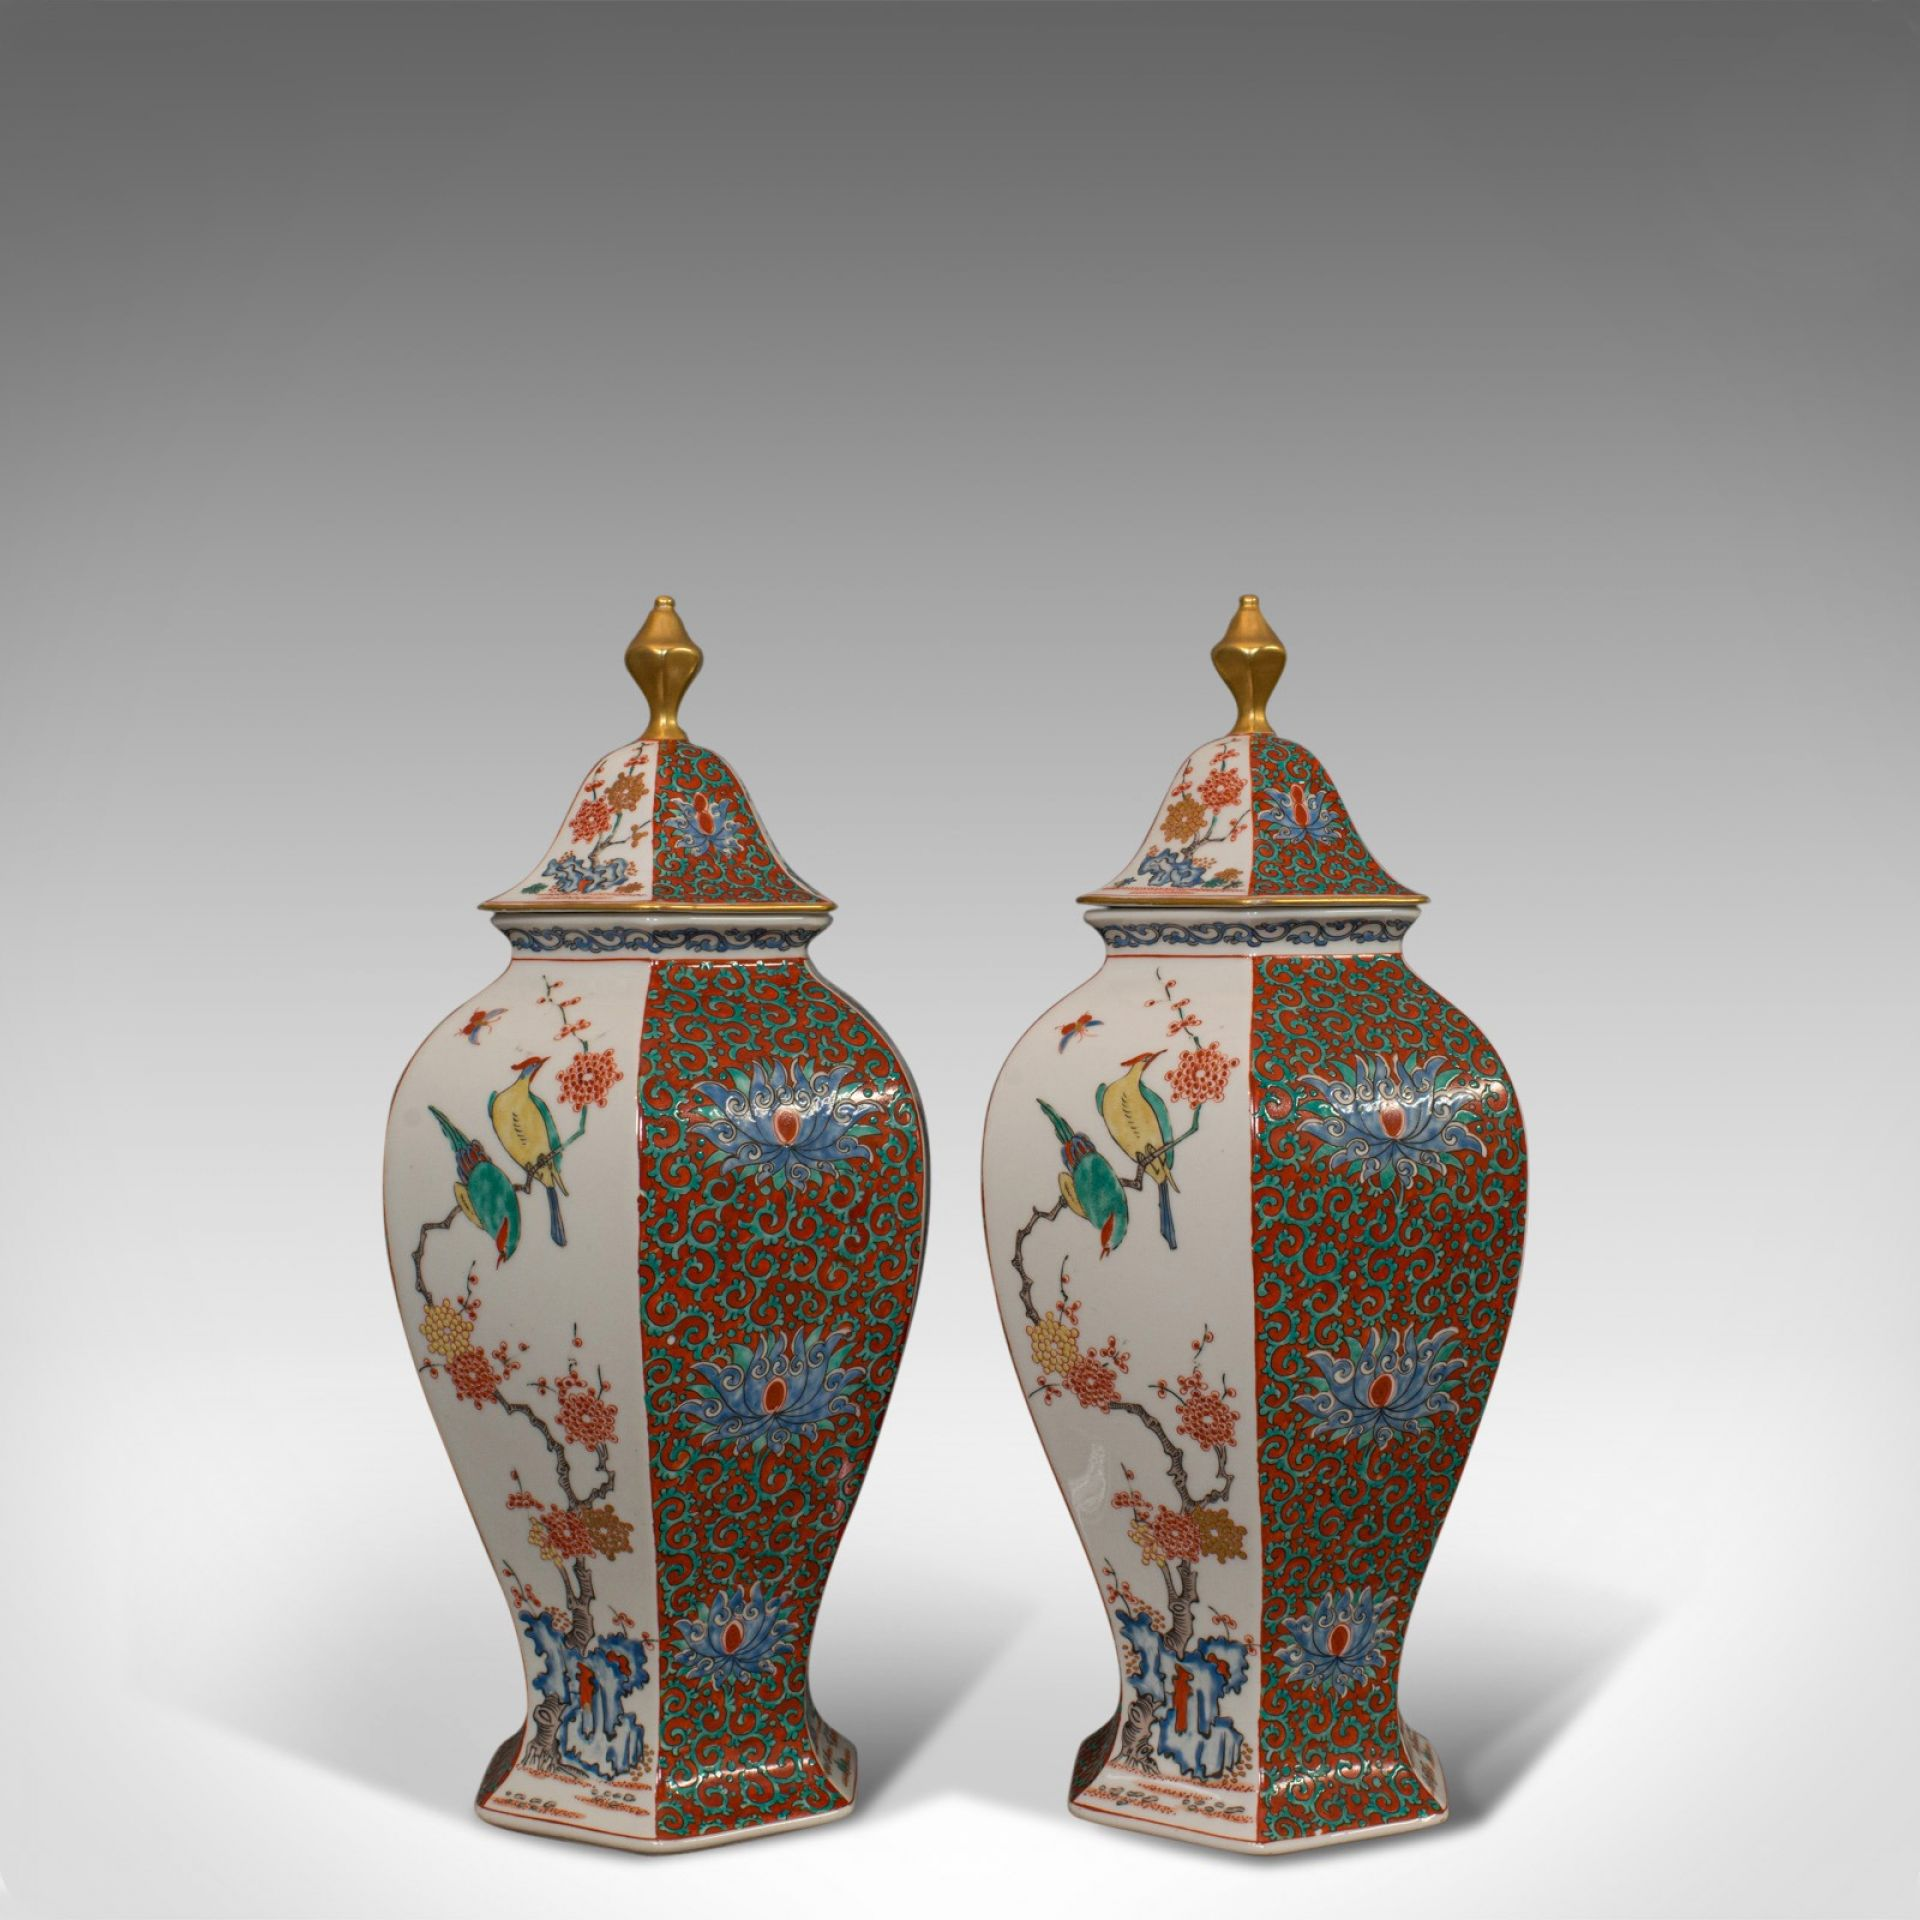 Pair of Vintage Hexagonal Spice Jars, Oriental, Ceramic, Baluster, Urn, Avian